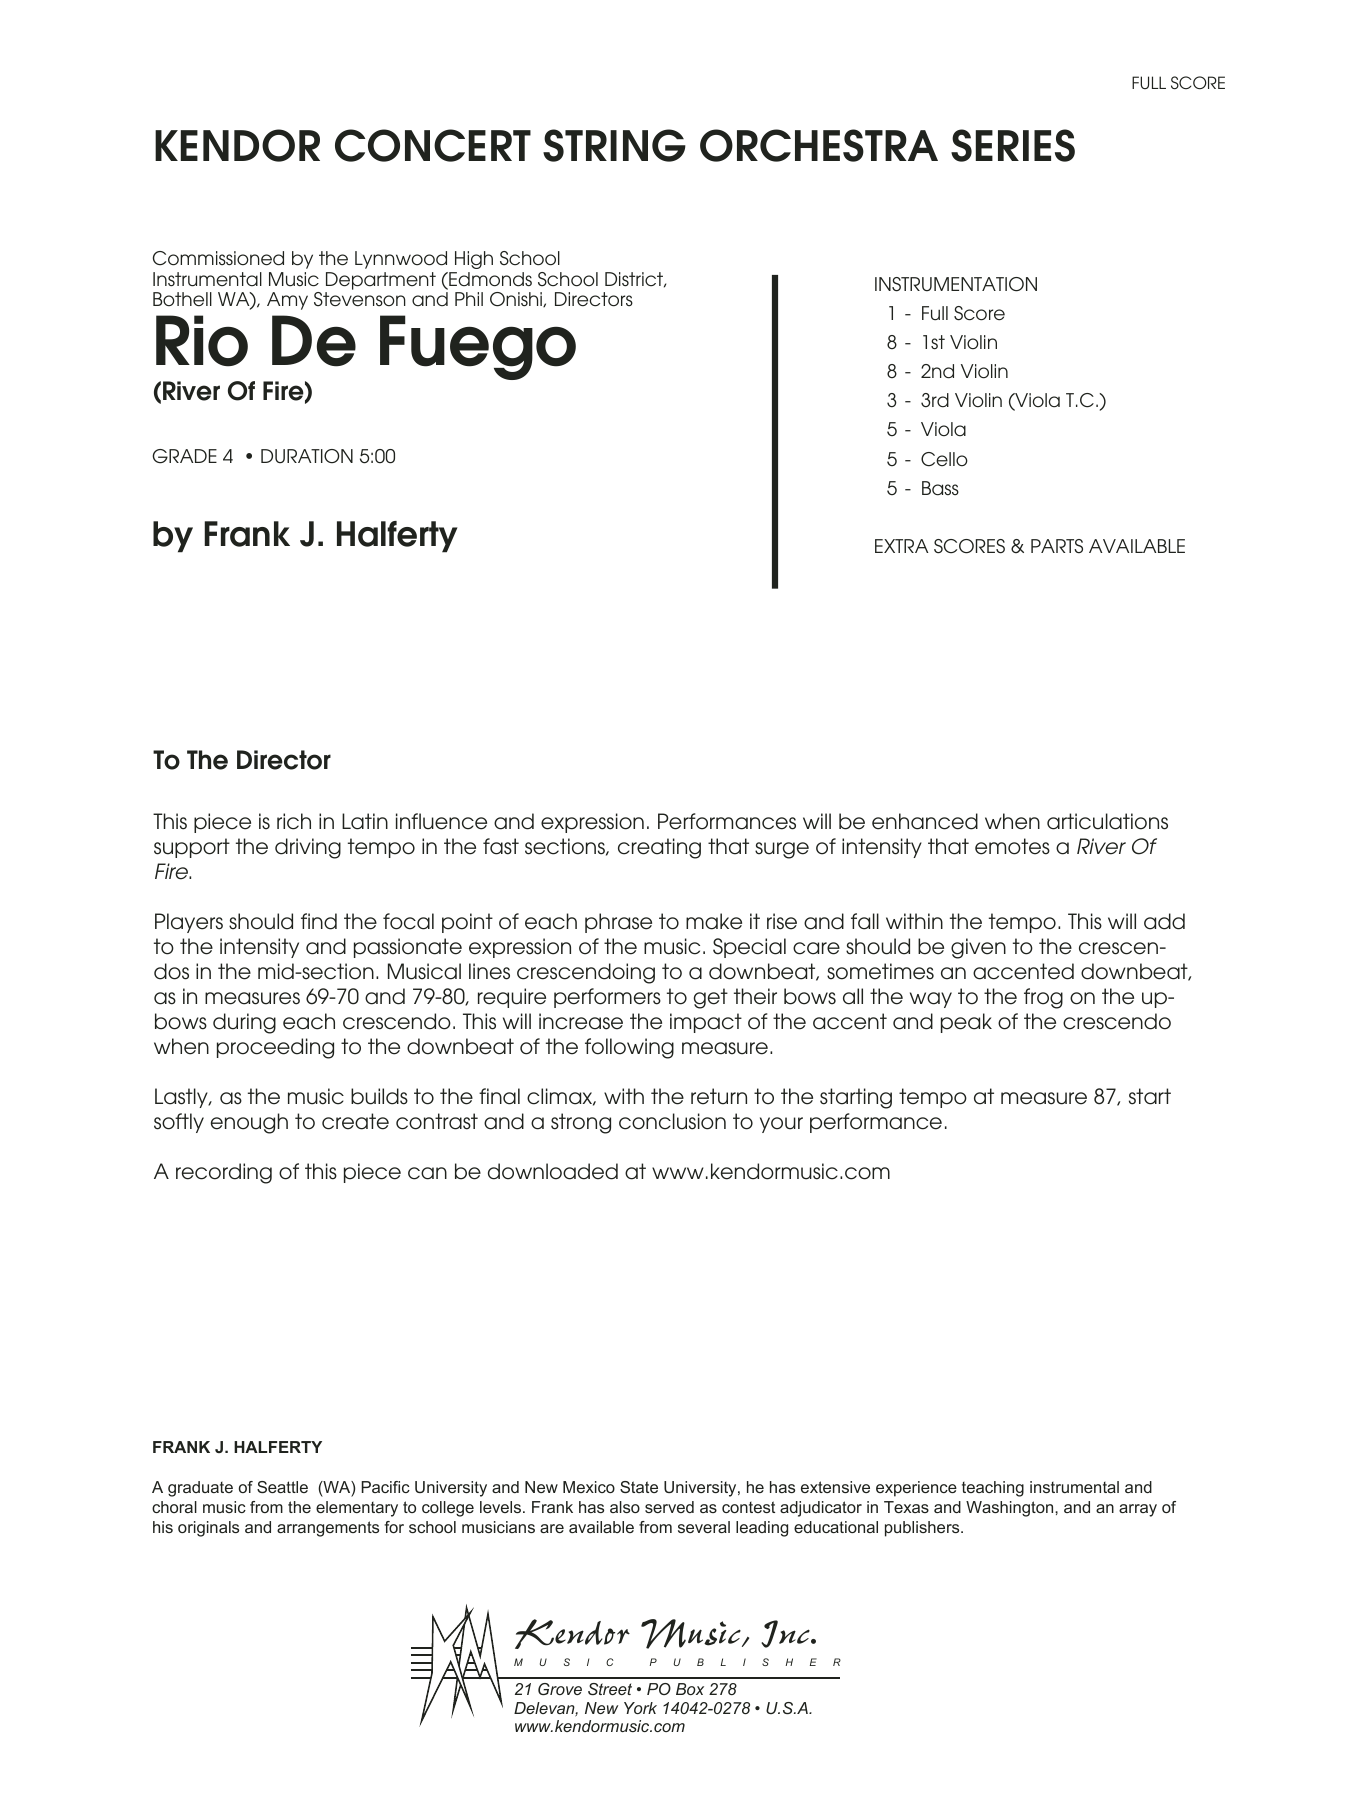 Rio De Fuego (River Of Fire) (COMPLETE) sheet music for orchestra by Frank J. Halferty